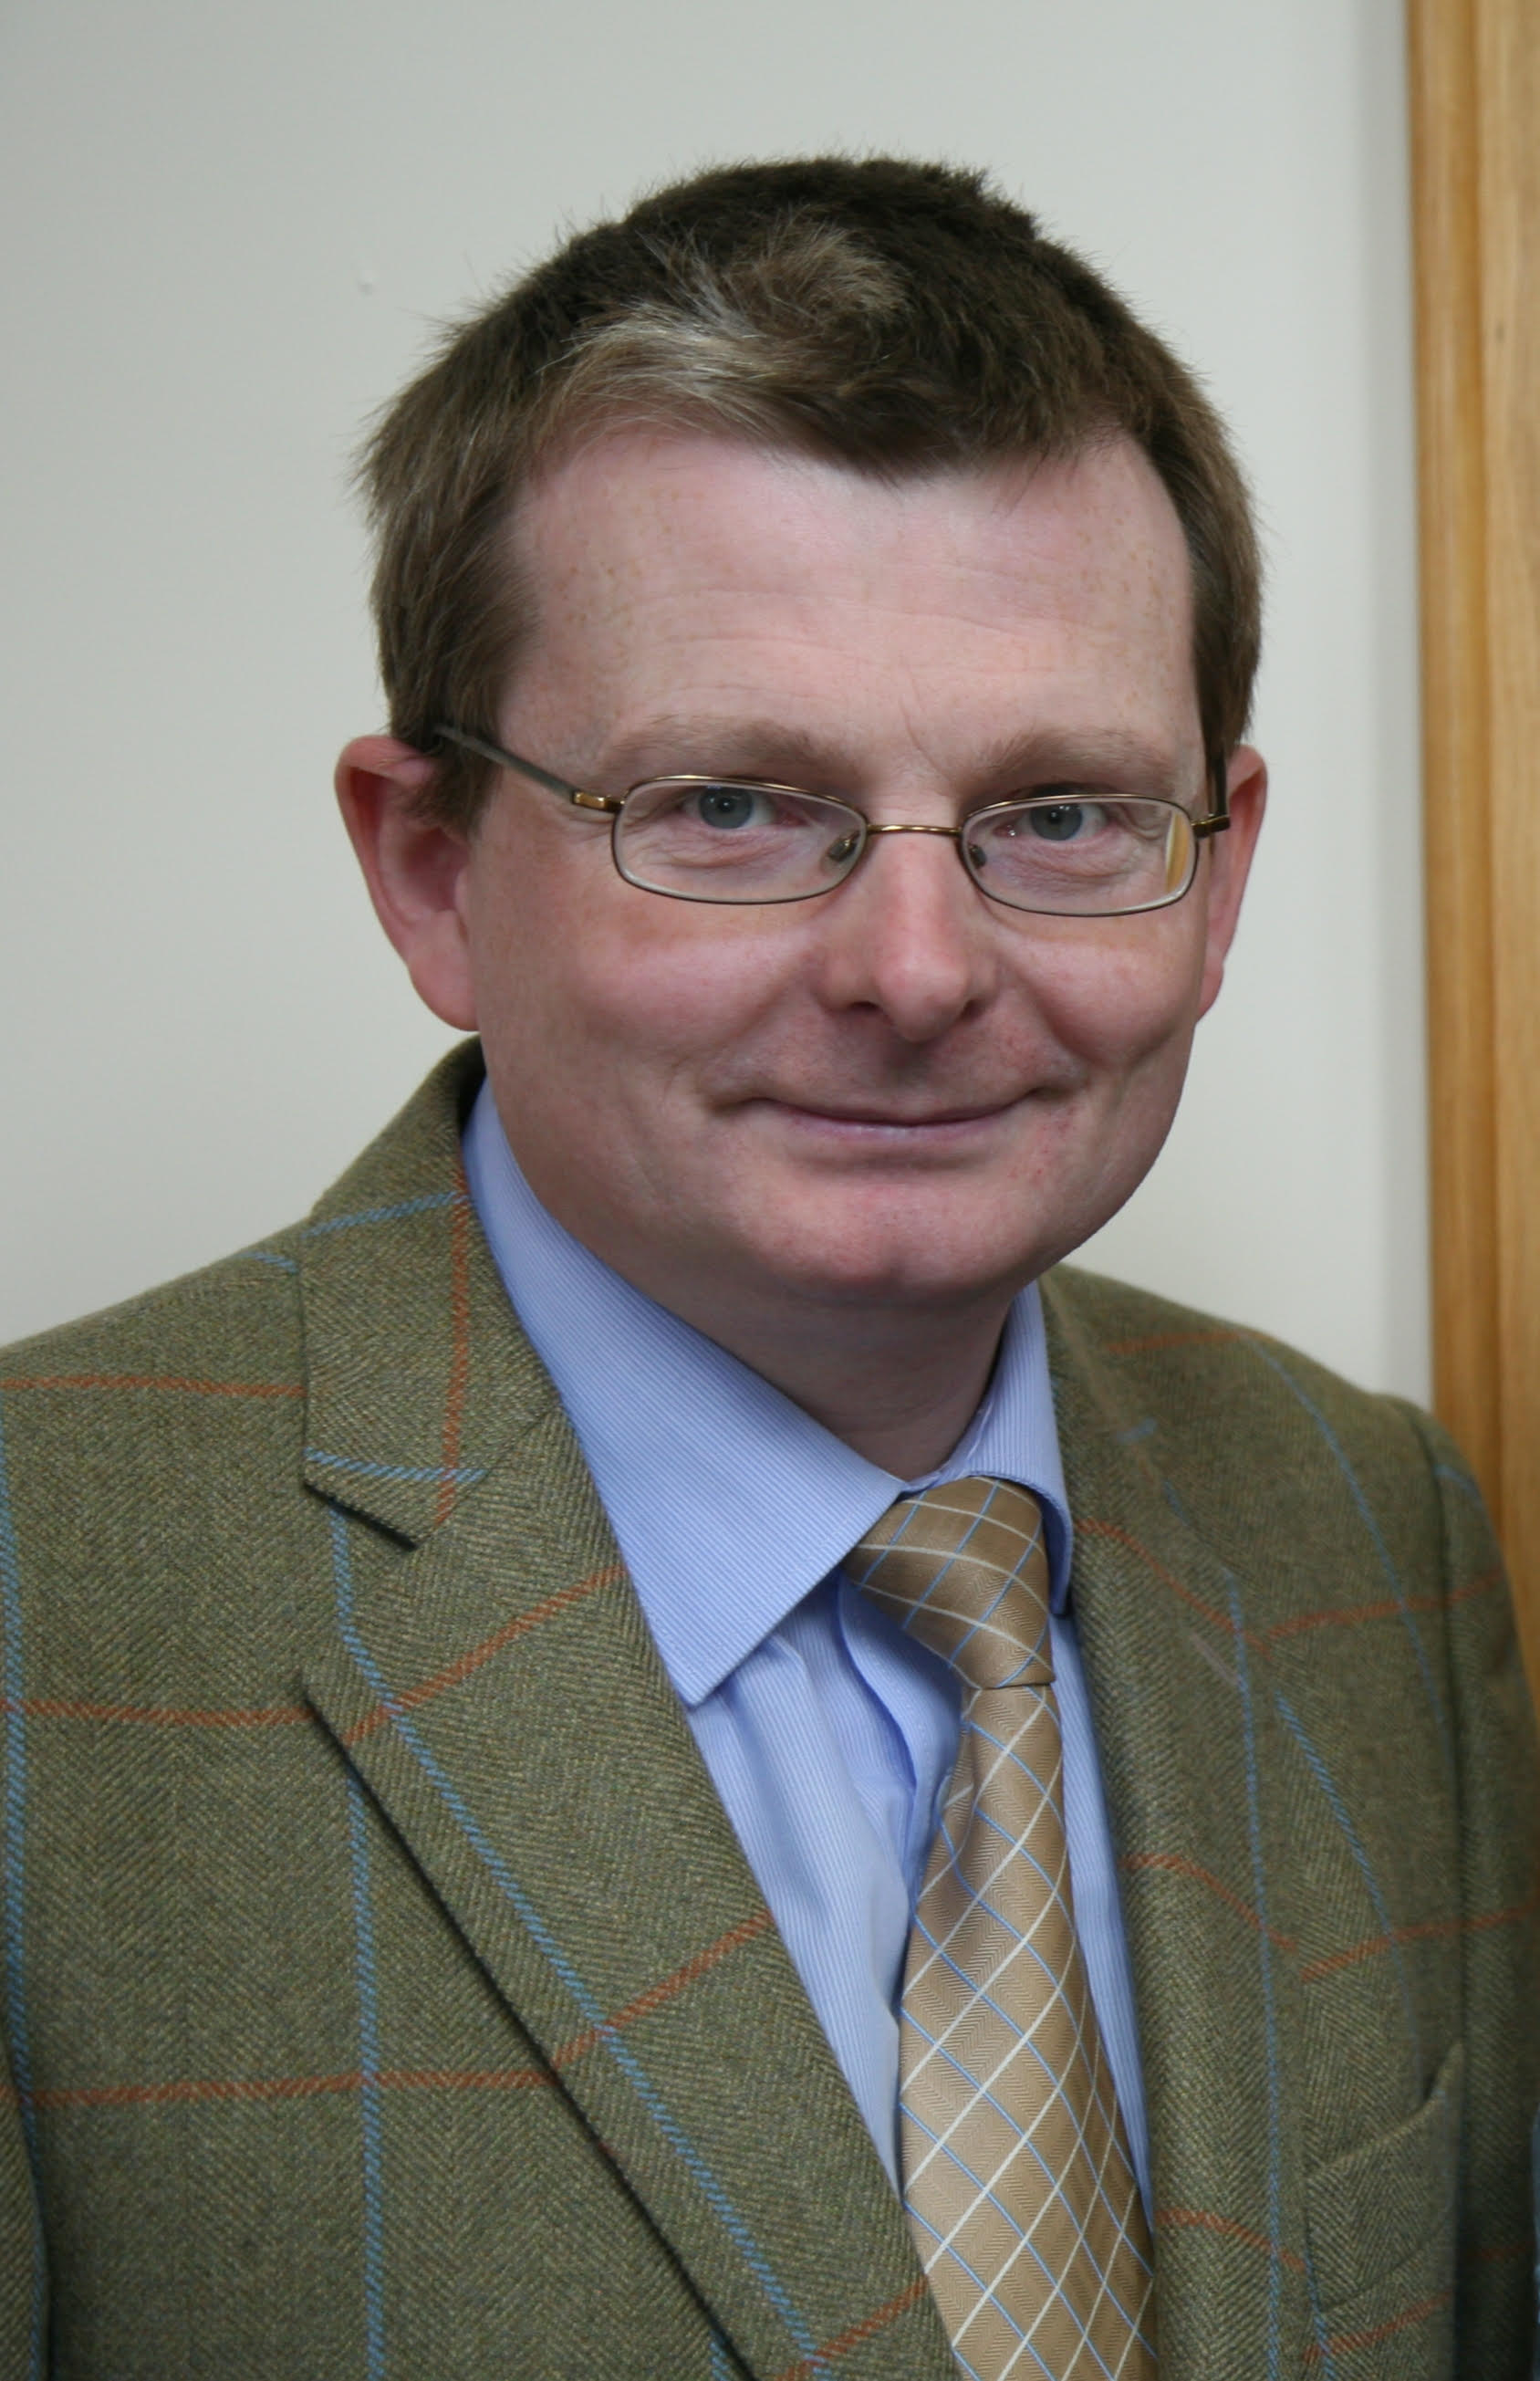 William Roulston - Dr William Roulston has been the Research Director of the Ulster Historical Foundation since 2006. He holds PhD in Archaeology from Queen's University Belfast. His books include Researching Scots-Irish Ancestors, 1600-1800 (2005), Restoration Strabane, 1660-1714 (Dublin, 2007) and Abercorn: The Hamilton's of Barons Court (Belfast, 2014). He is a Member of Council of both the Presbyterian Historical Society of Ireland and the Belfast Natural History and Philosophical Society, and is a Fellow of the Society of Antiquaries of Scotland.